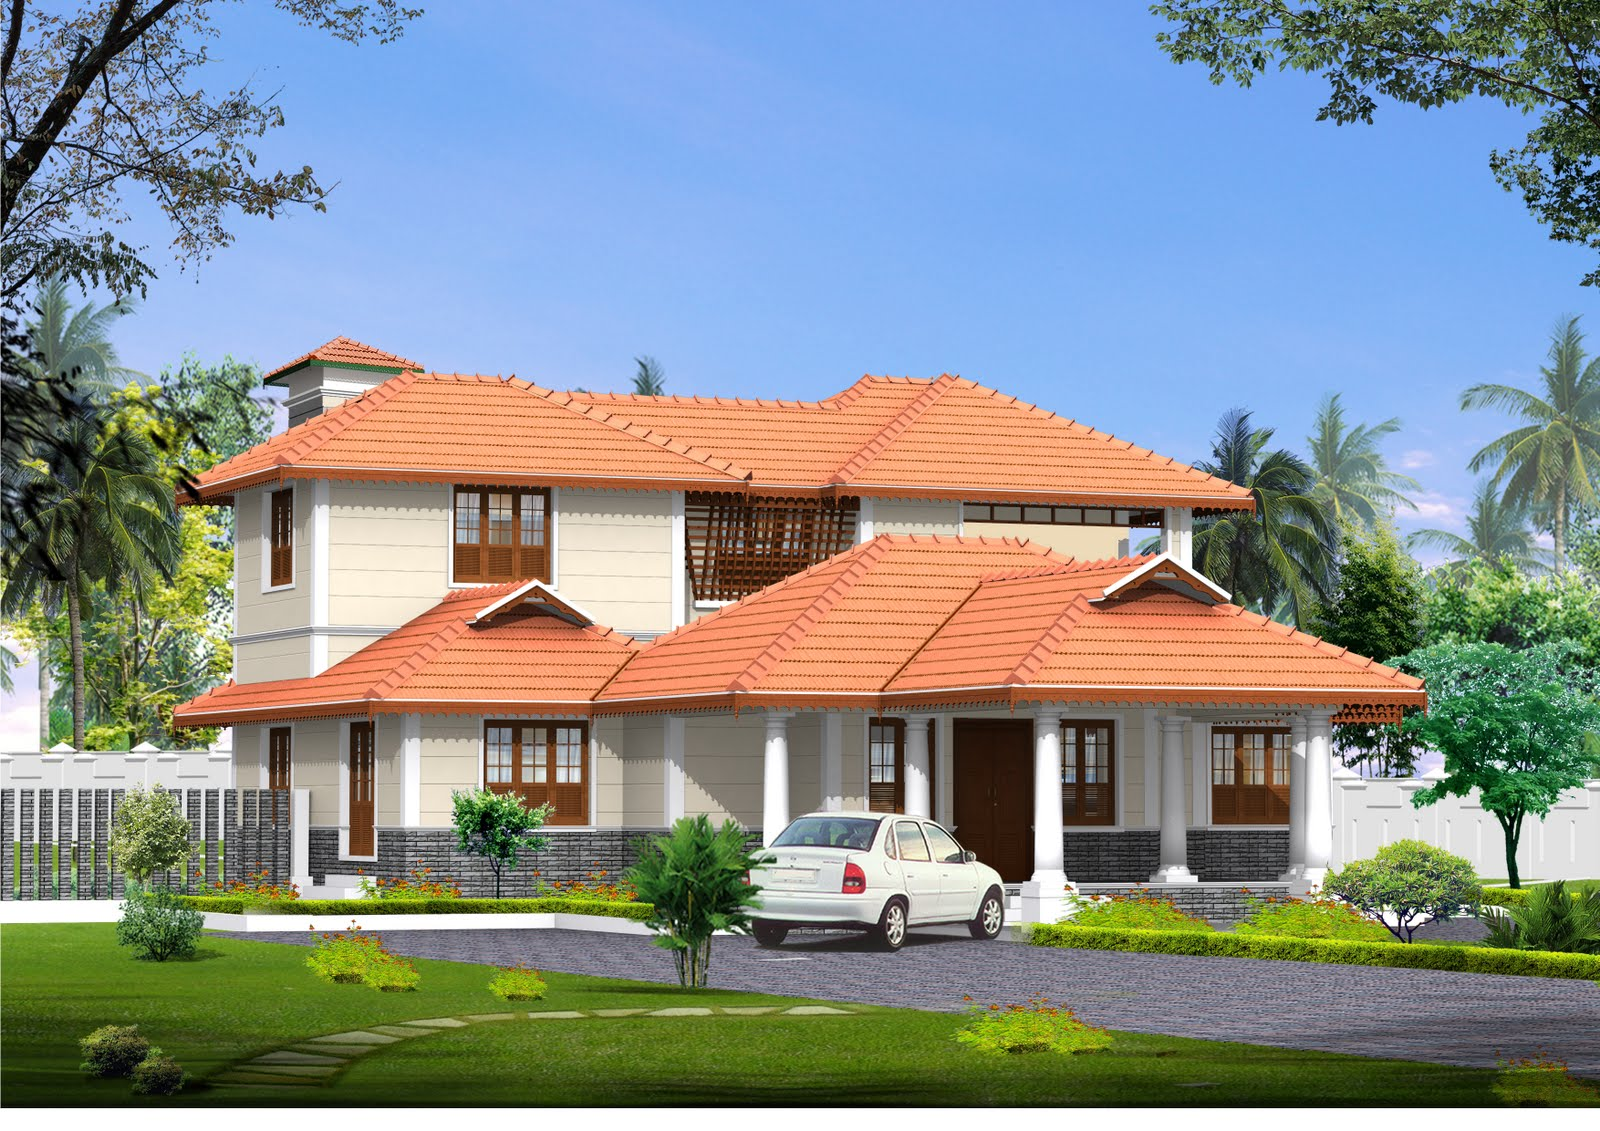 3D view and Floor plan of 3 Bedroom House From Engineer Jijeesh .